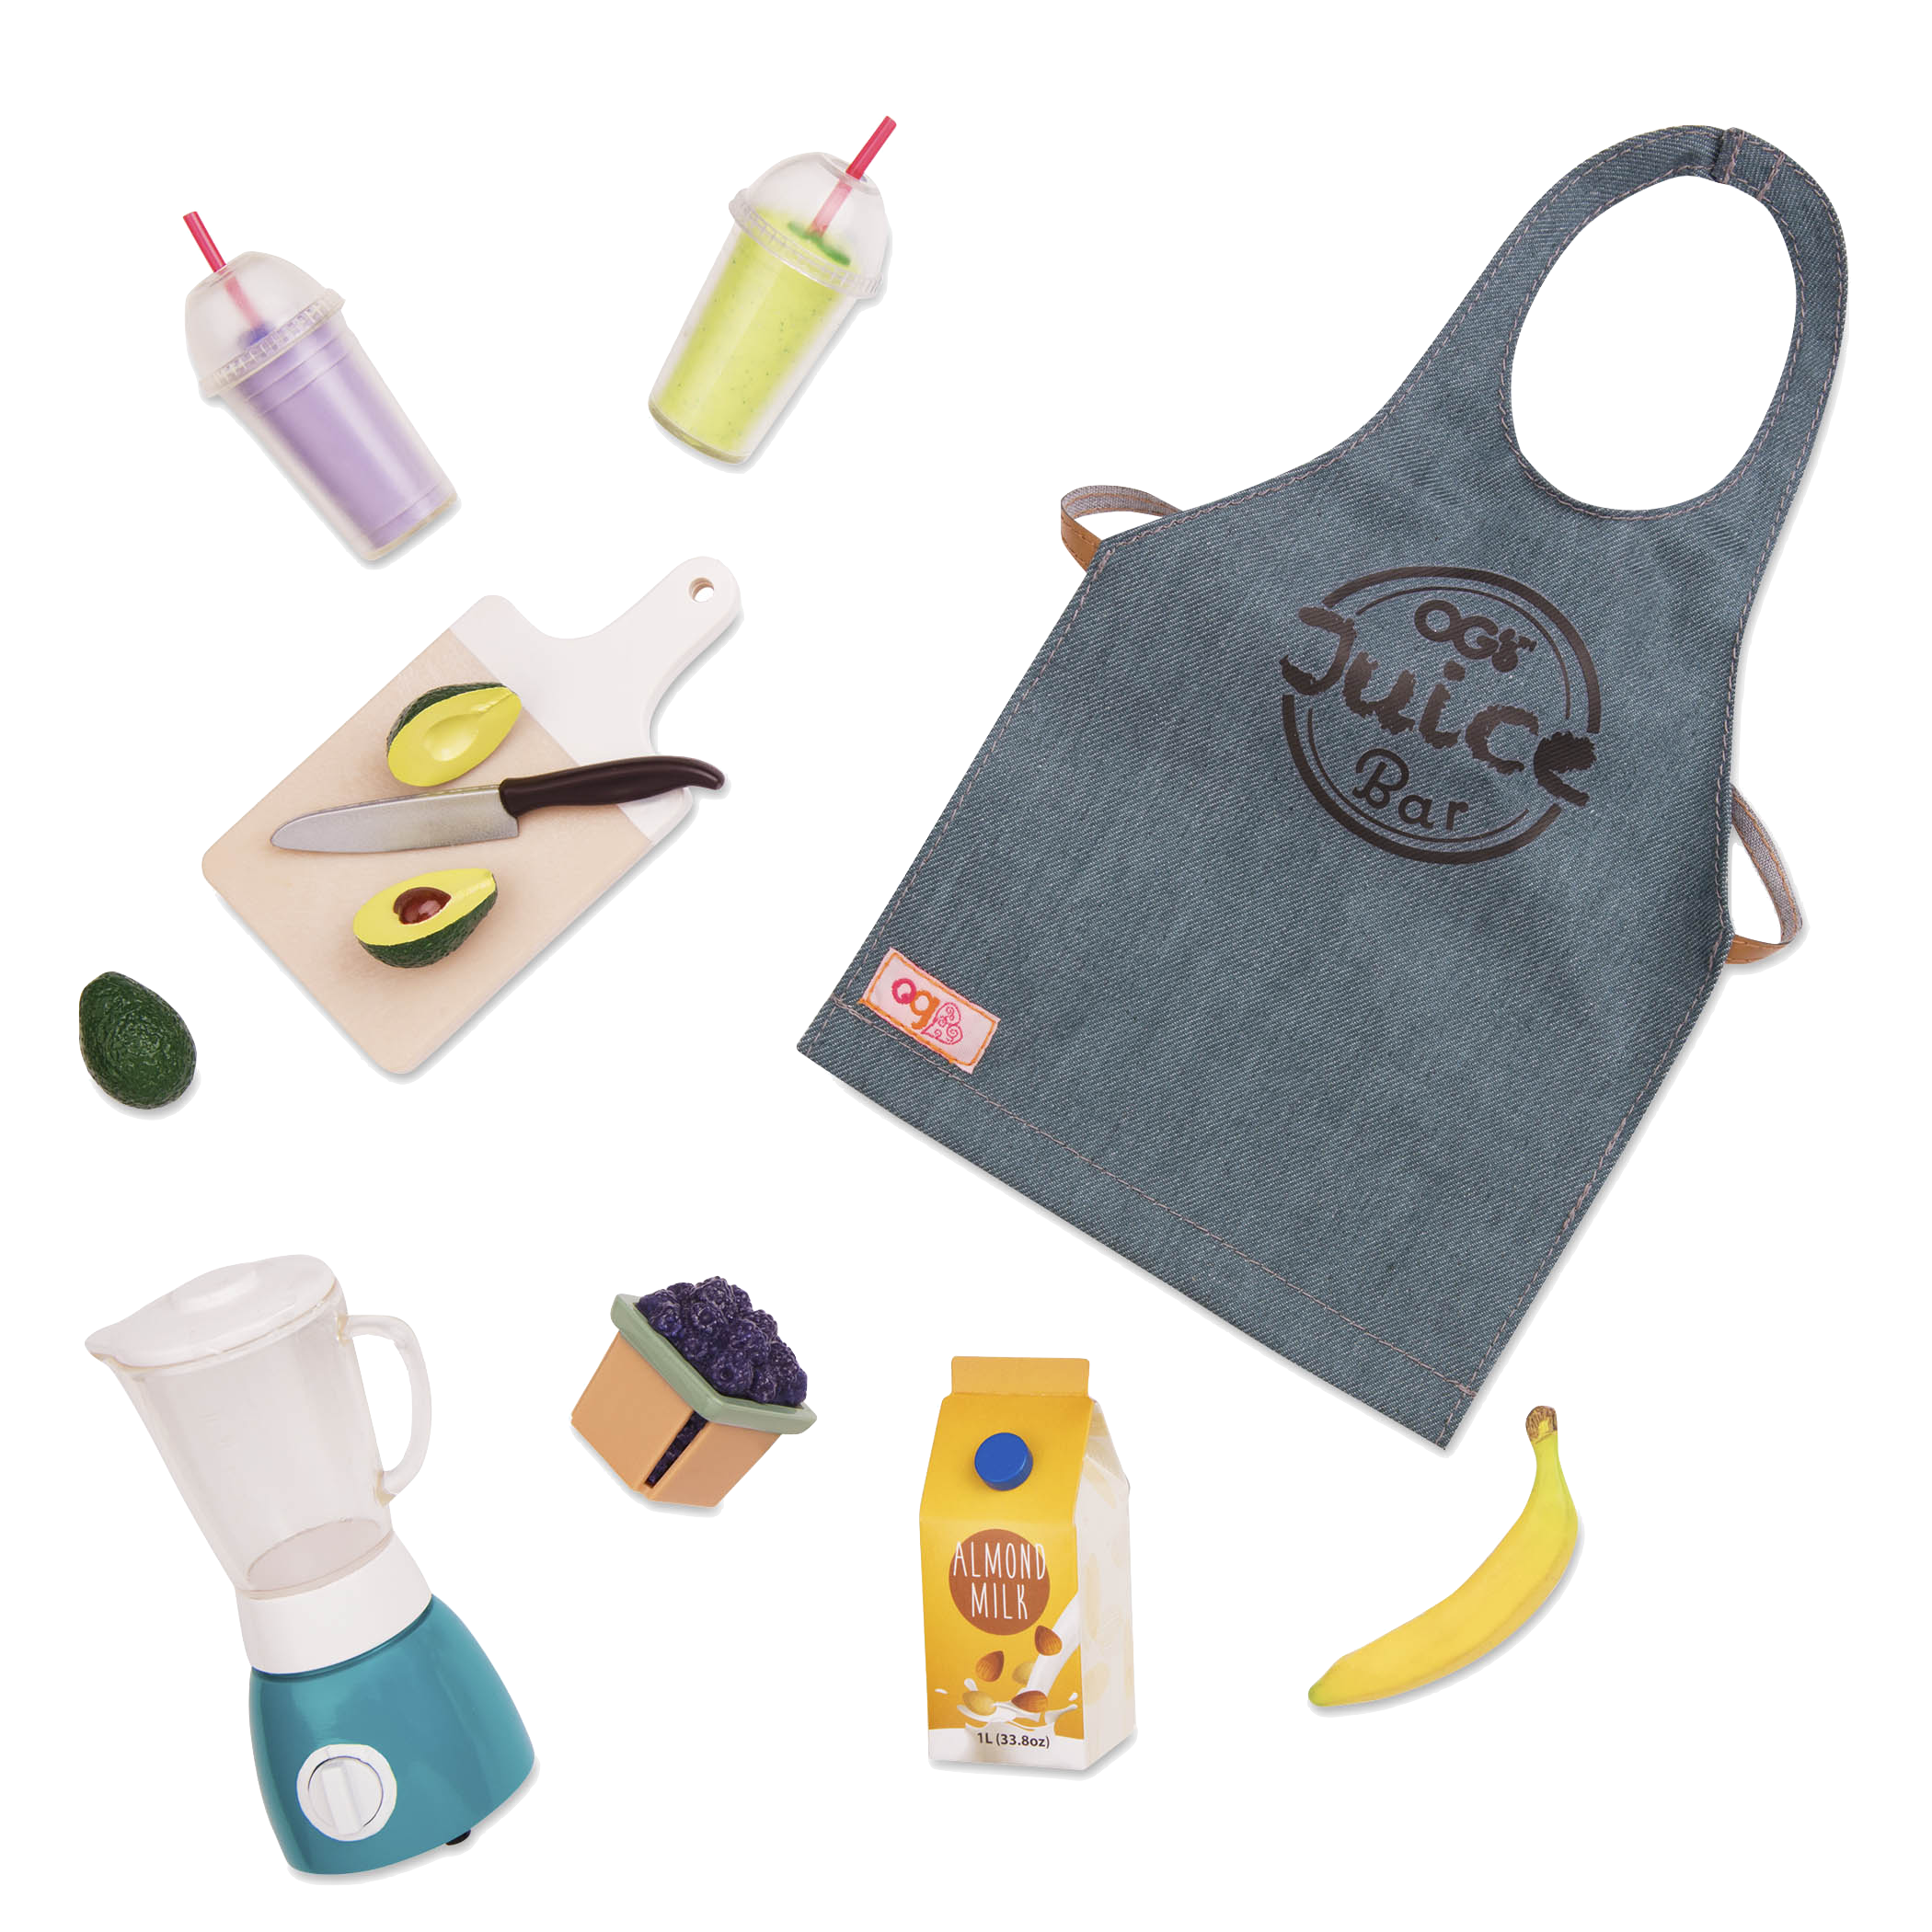 OG Grill Juice Bar Accessory Set all components